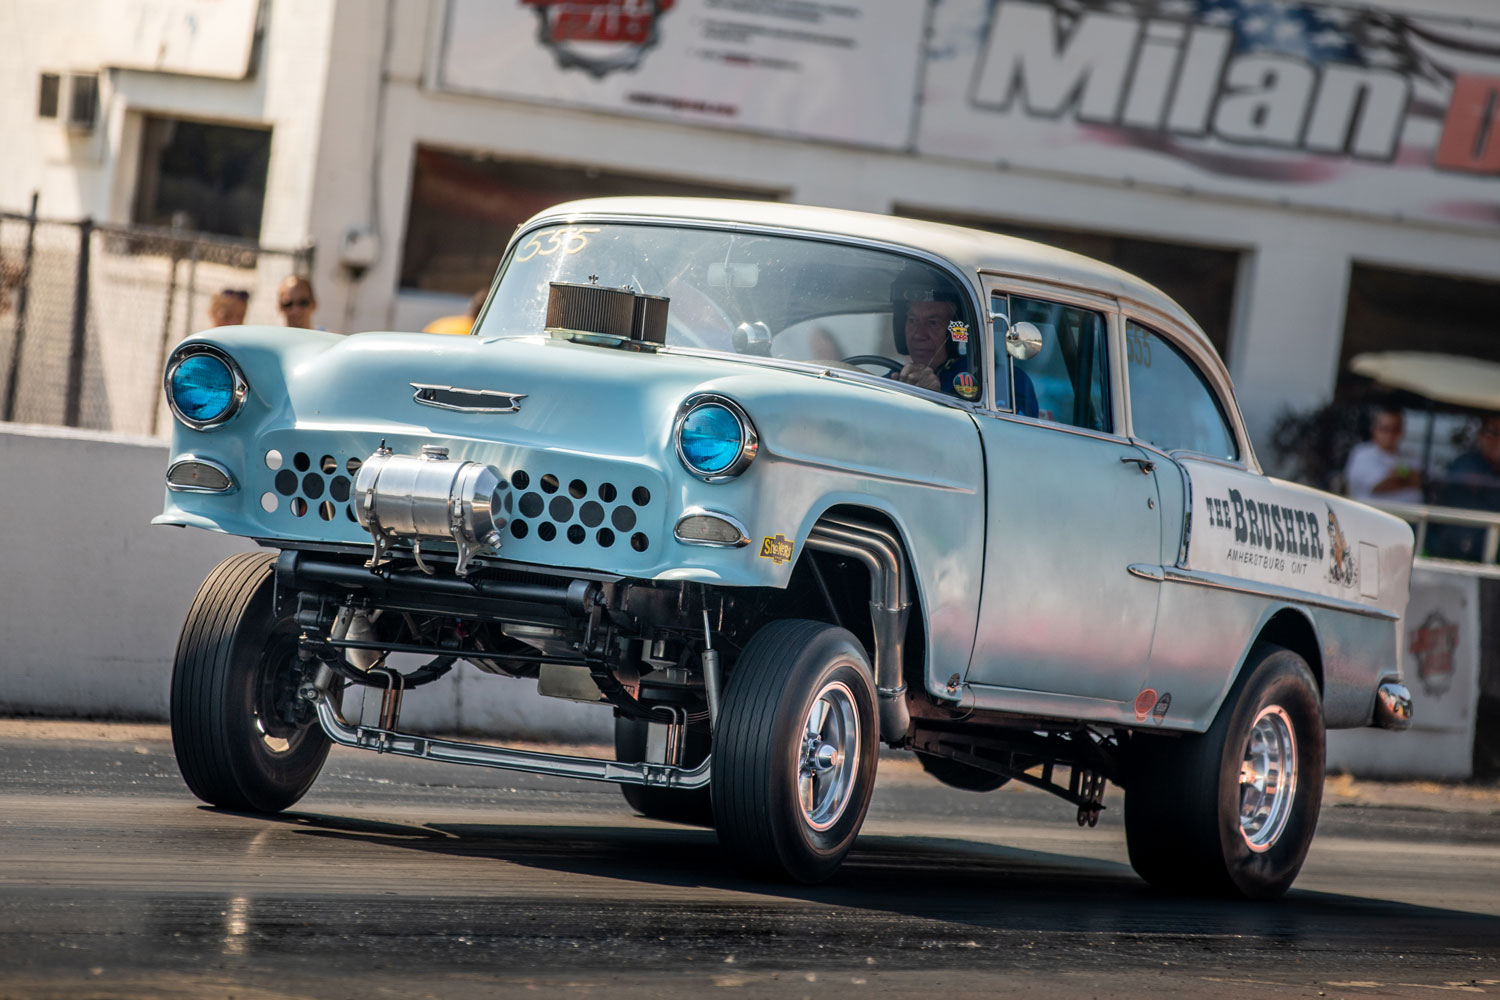 1955 Chevy Drag Car